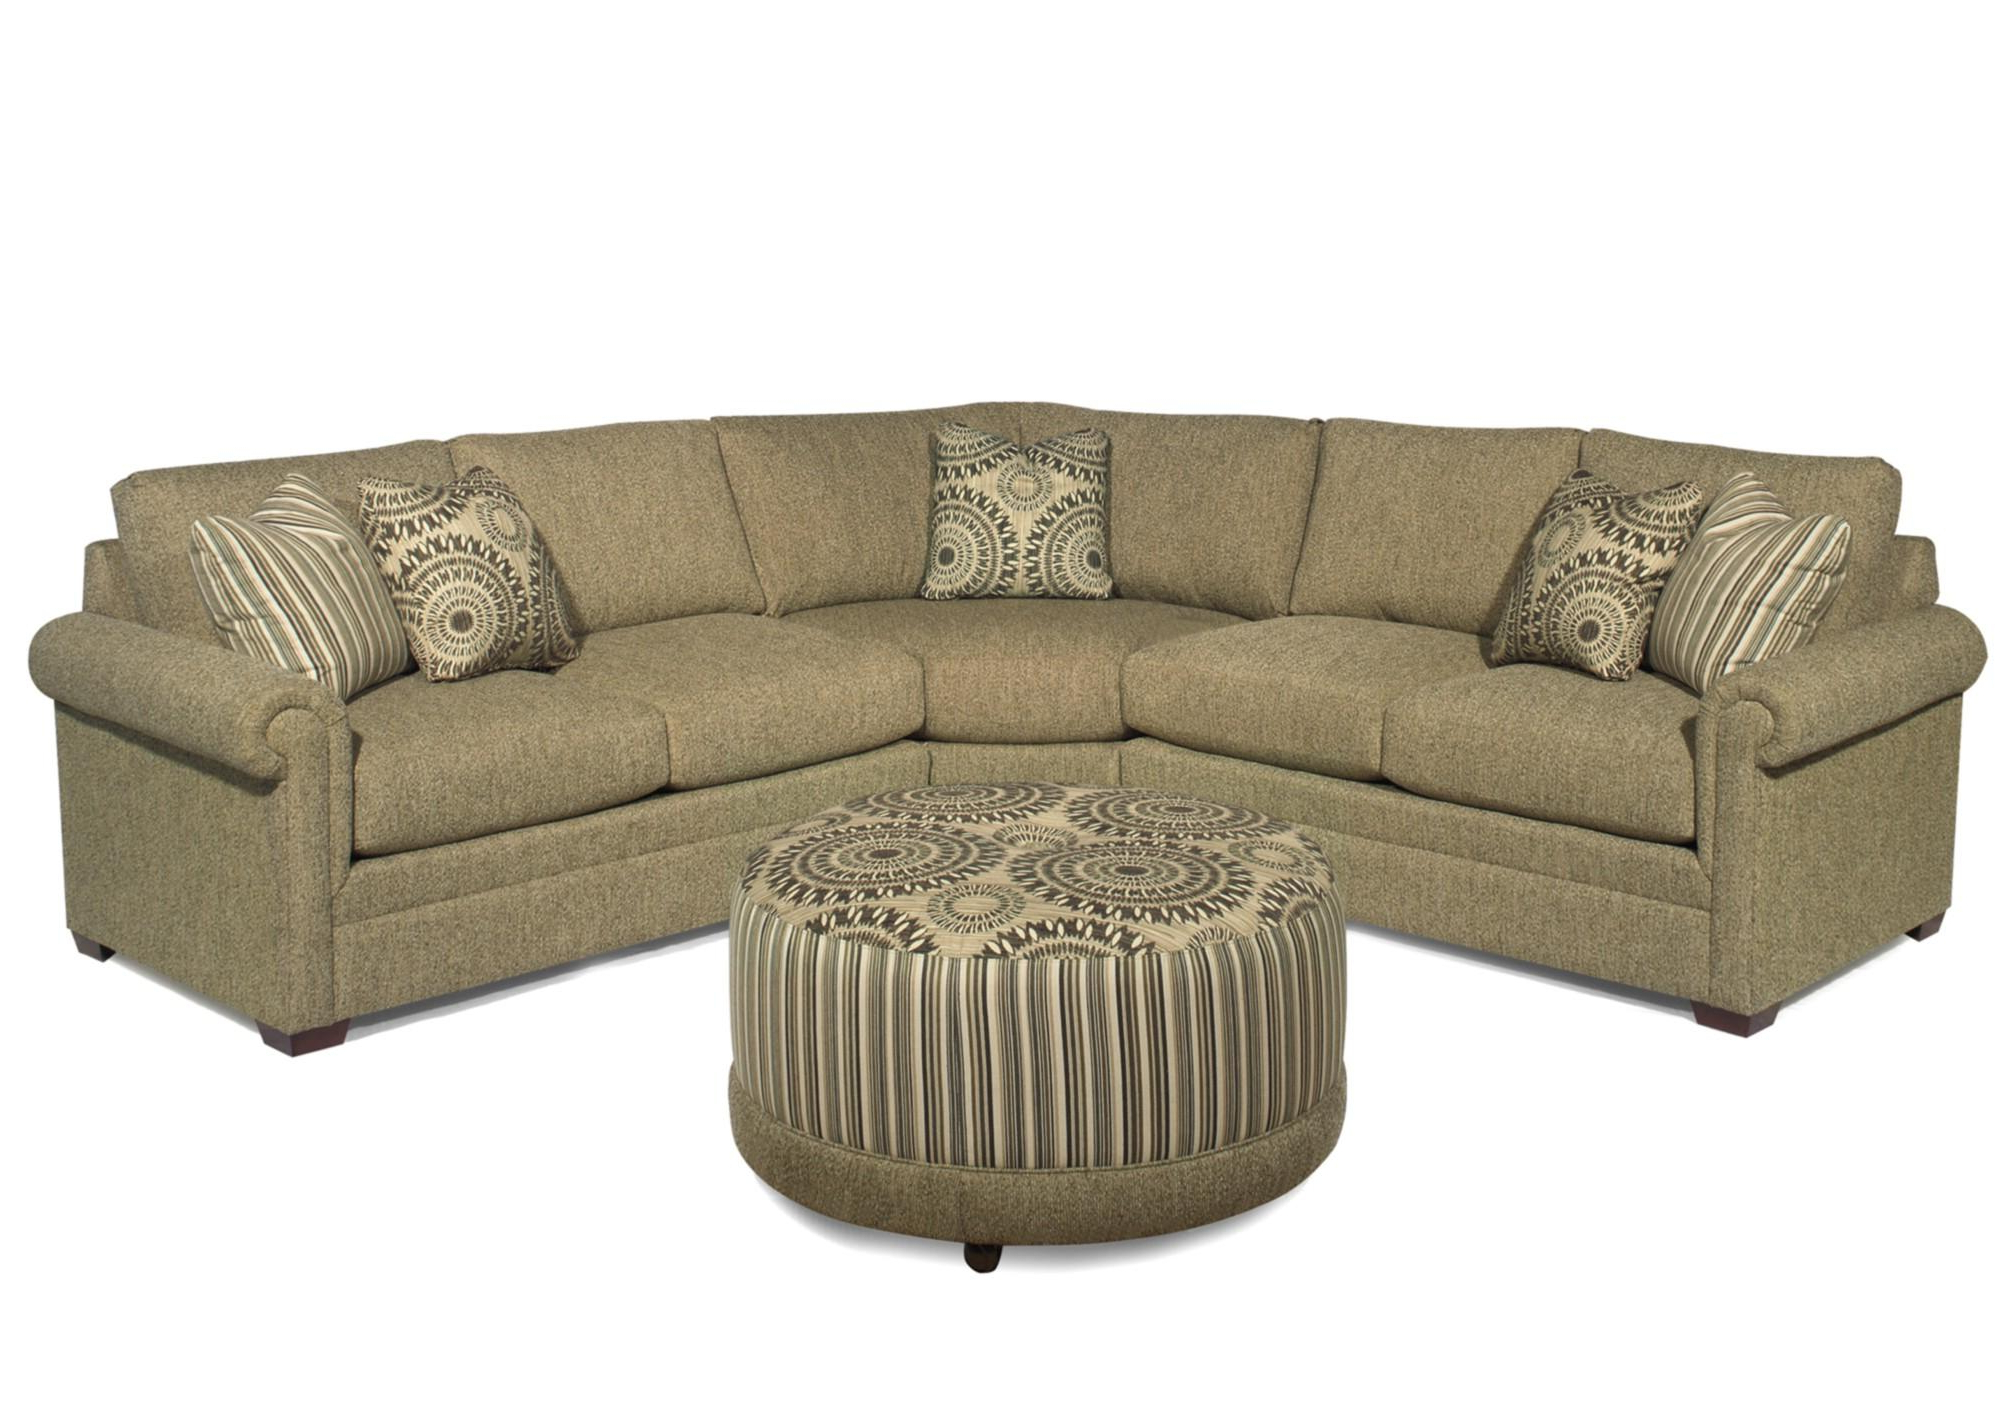 Craftmaster F9 Custom Collection <b>customizable</b> 3 Piece For Well Known Adeline 3 Piece Sectionals (View 11 of 20)